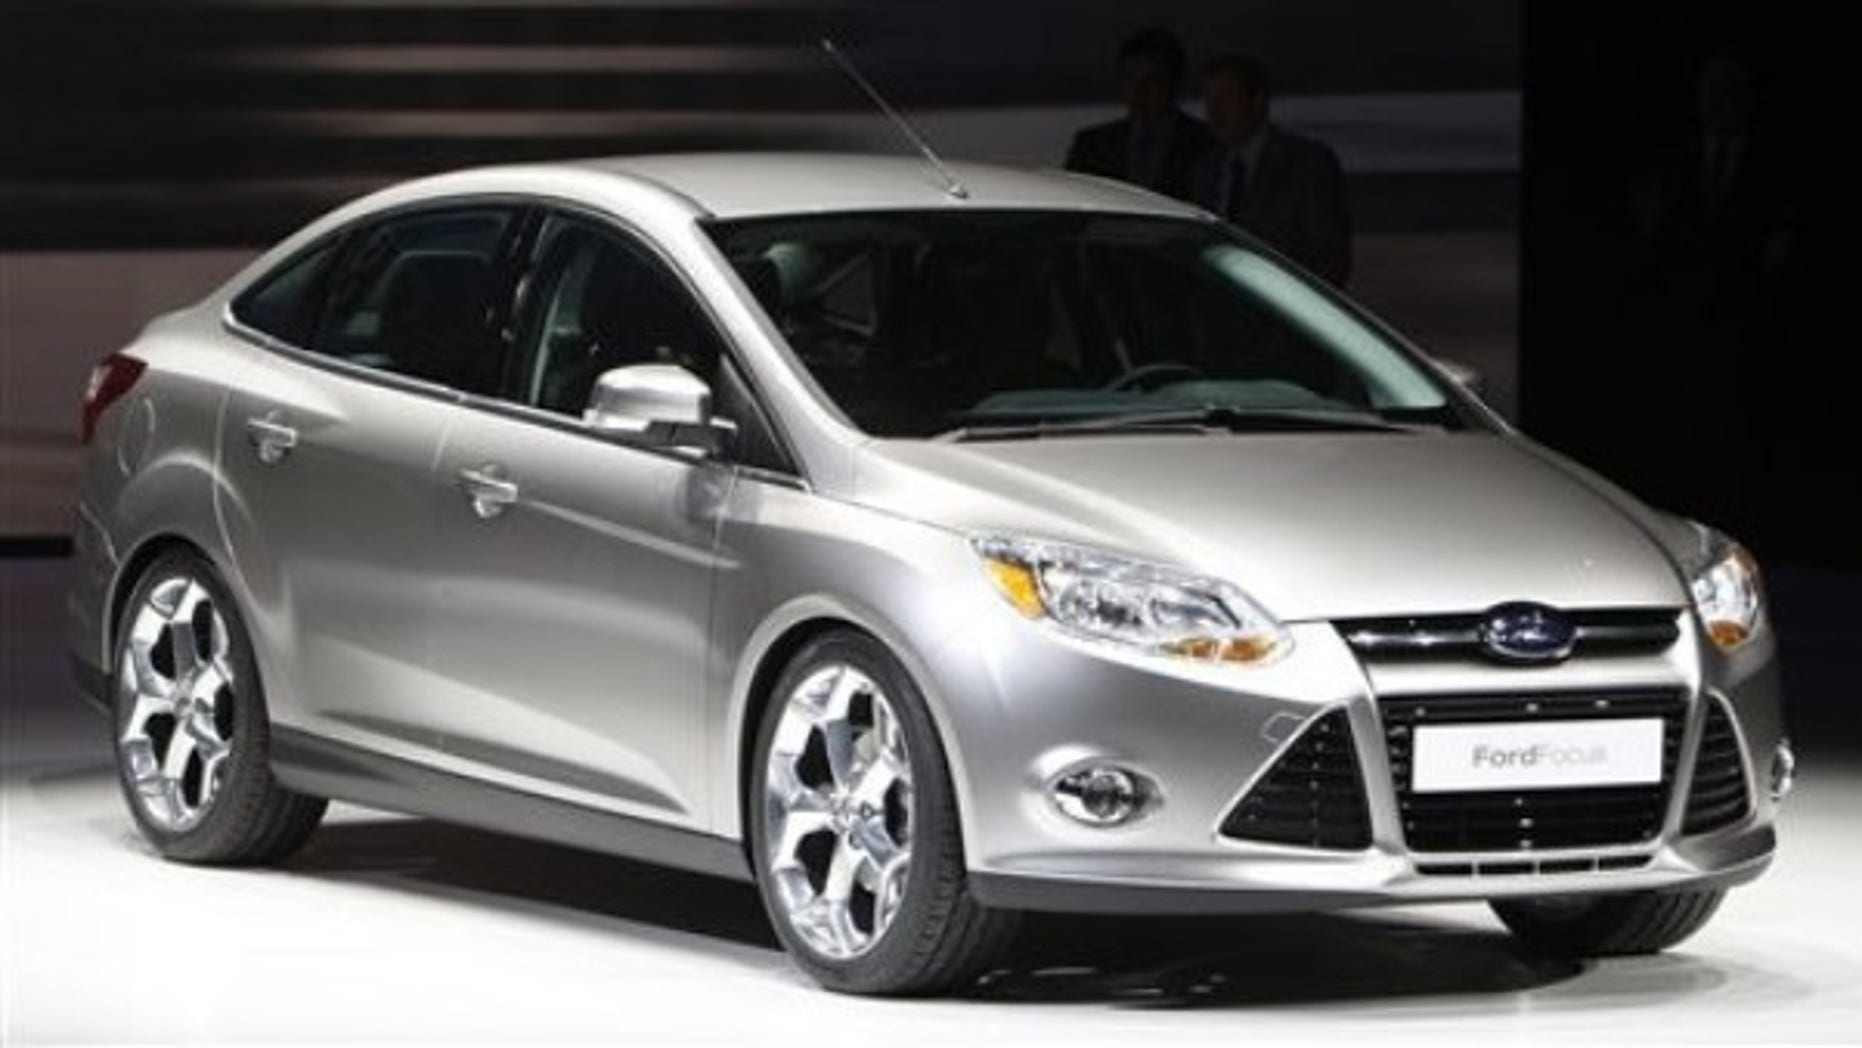 The next generation ford focus 4 door is introduced at the north american international auto